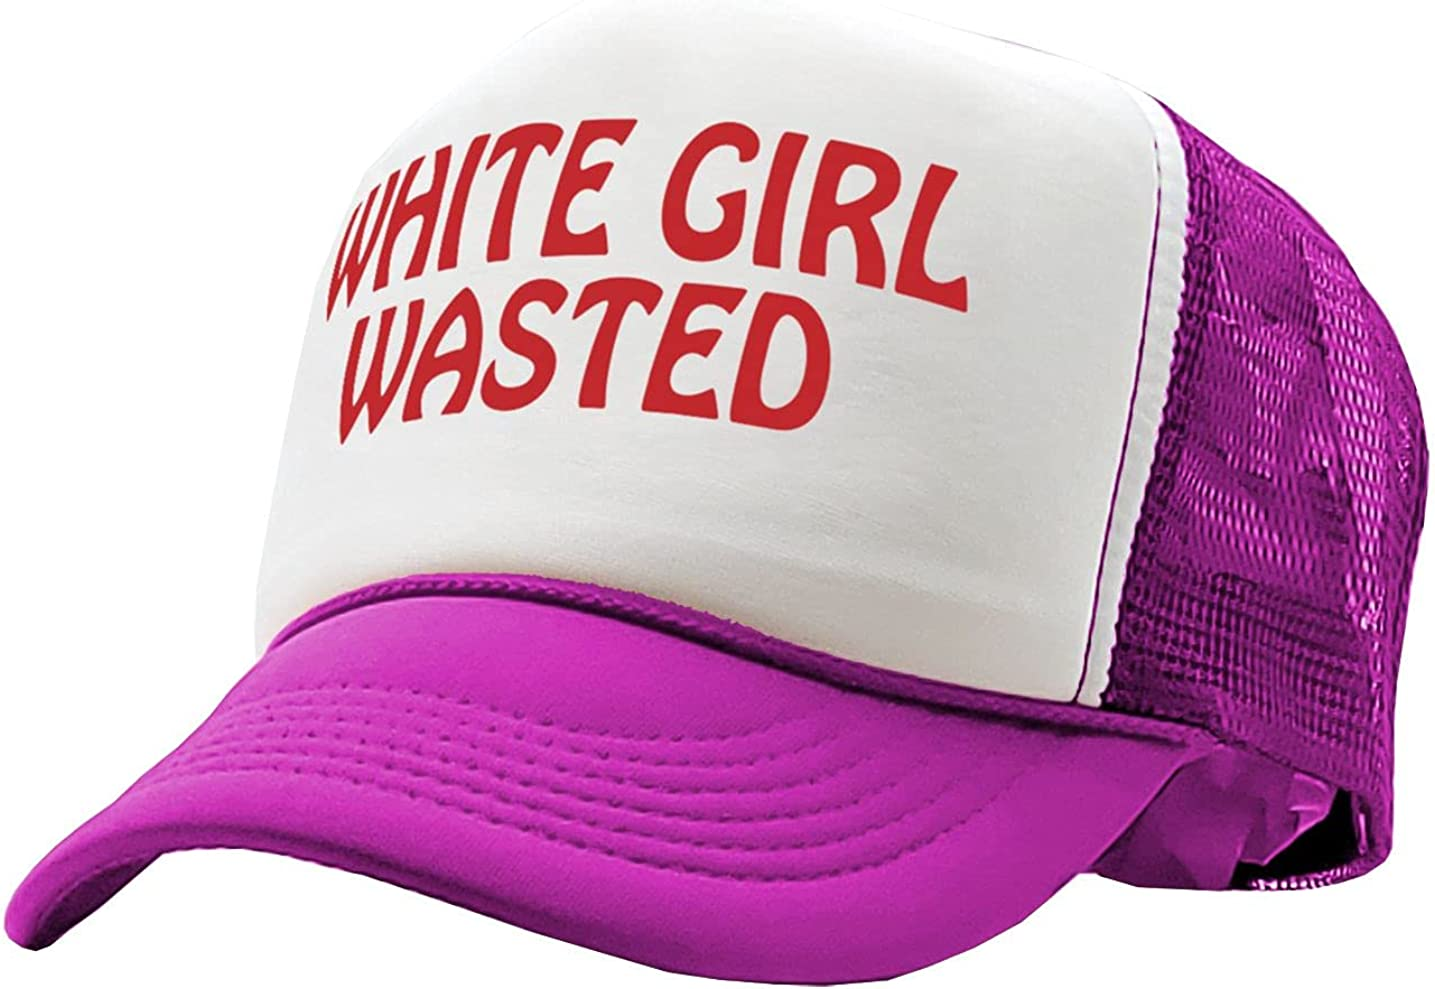 Gooder Tees - White Girl Wasted - Funny Party Dance frat College - Vintage Retro Style Trucker Cap Hat